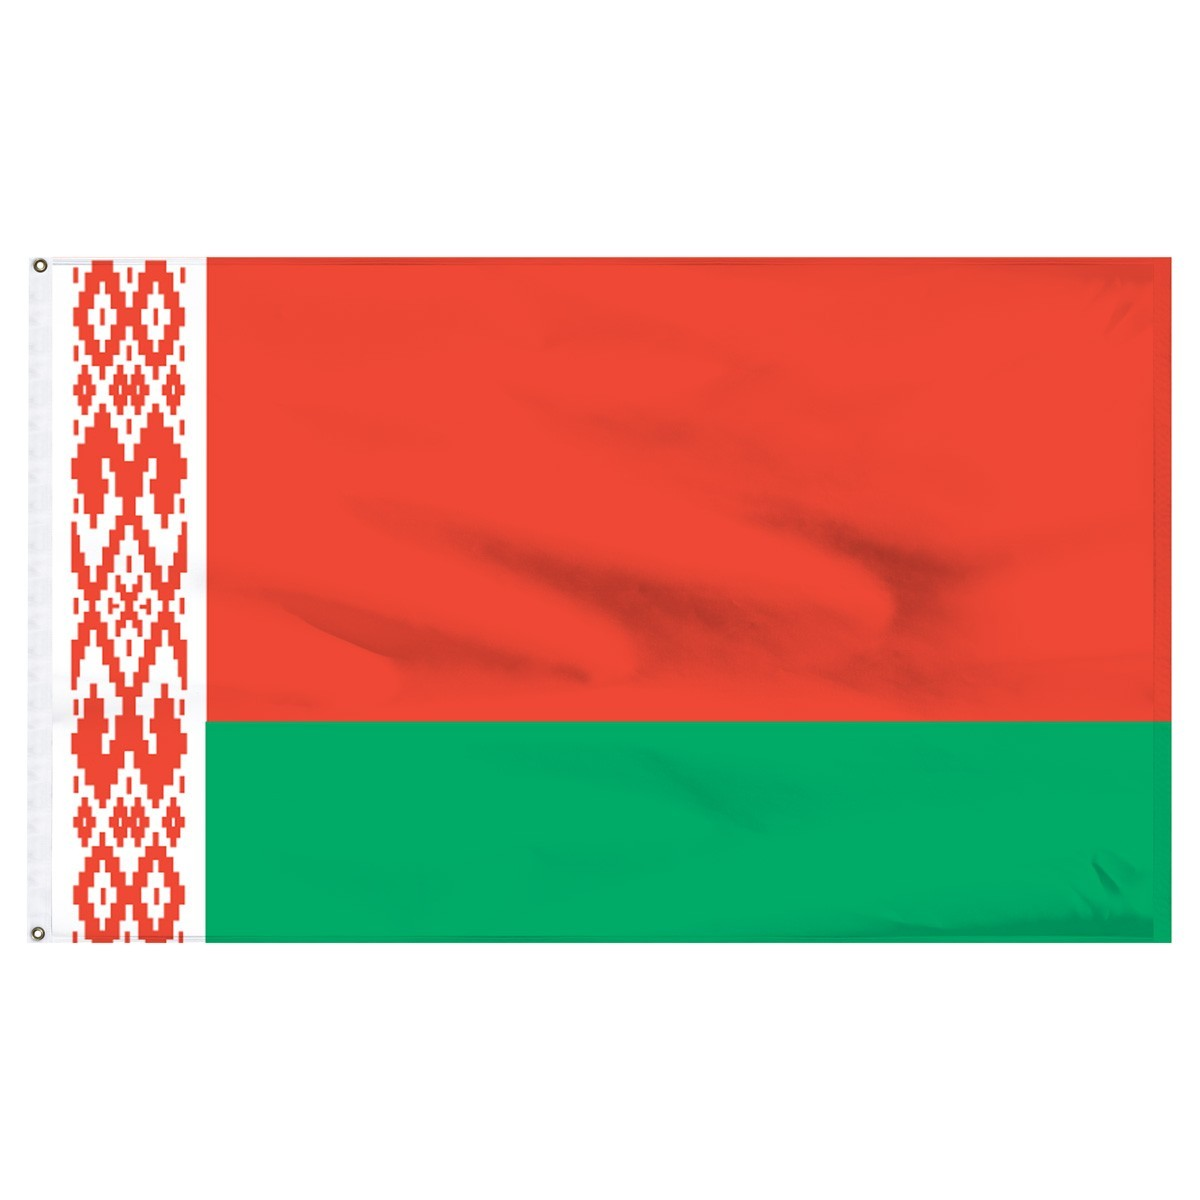 Belarus 4' x 6' Outdoor Nylon Flag